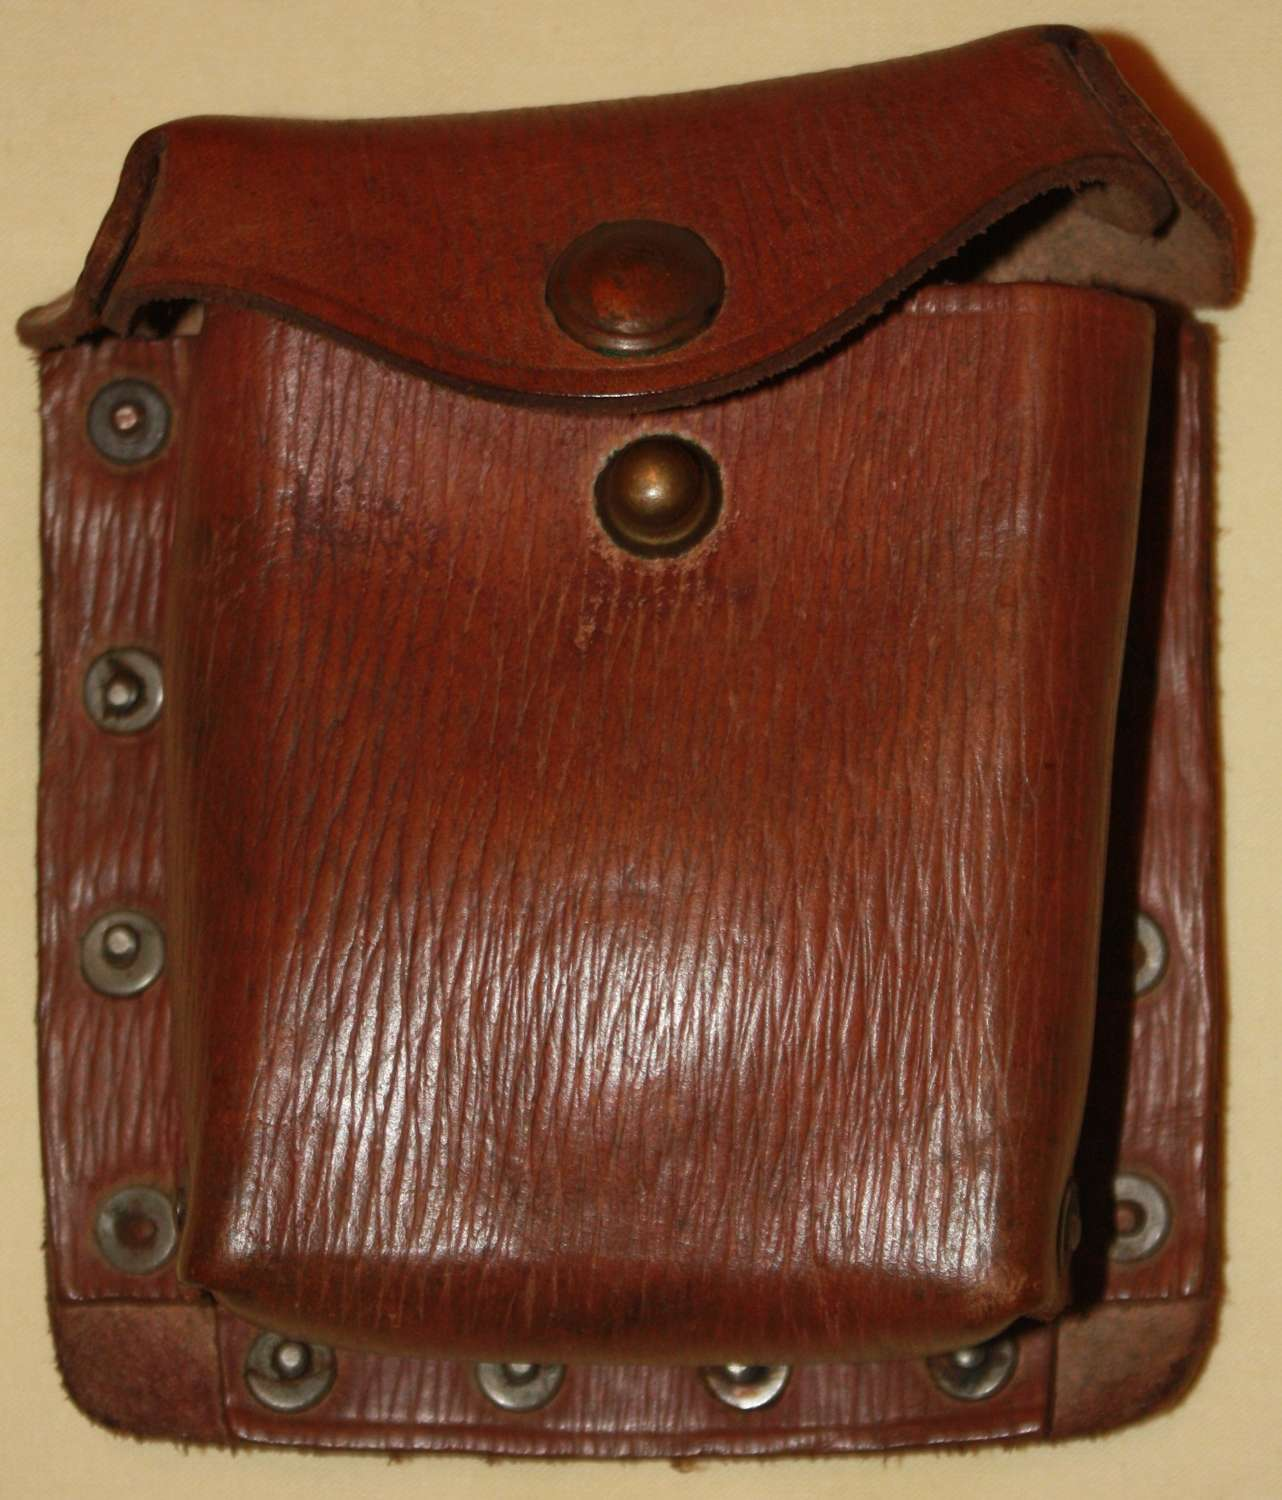 A 1941 DATED 39 PATTERN LEATHER EQUIPMENT PISTOL AMMO POUCH